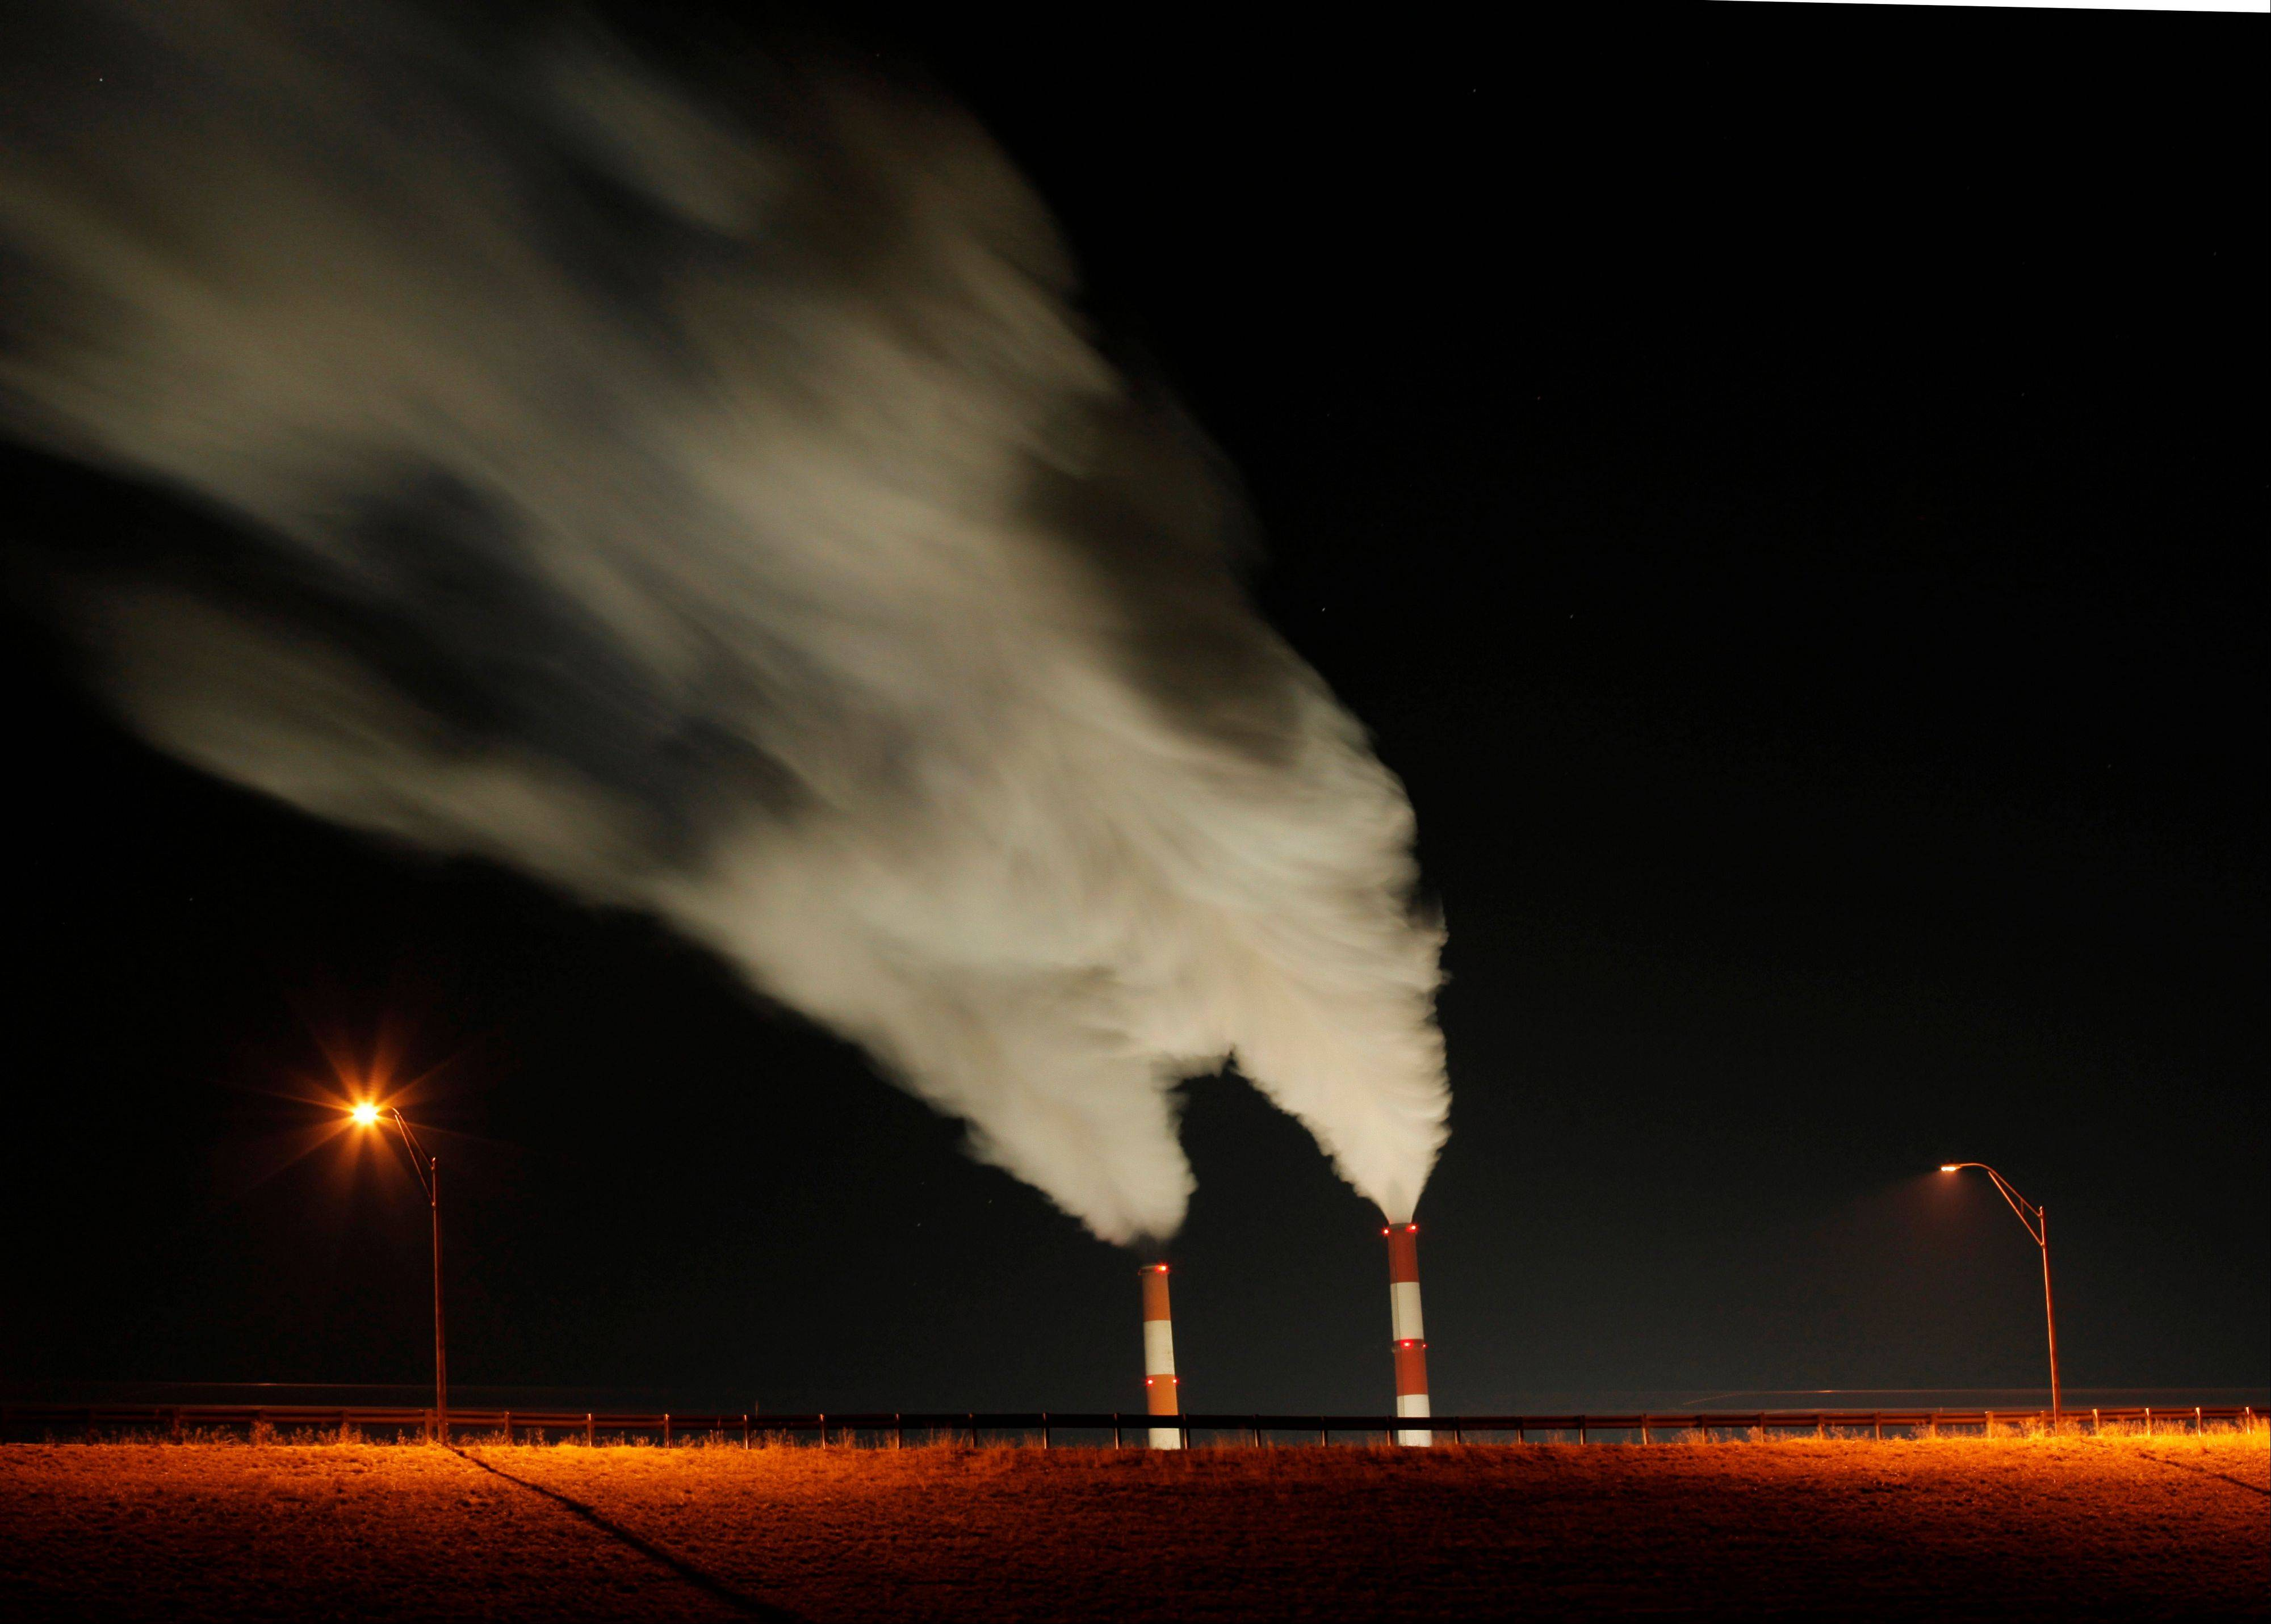 Time exposure image smoke rises from the stacks of the La Cygne Generating Station coal-fired power plant in La Cygne, Kan.